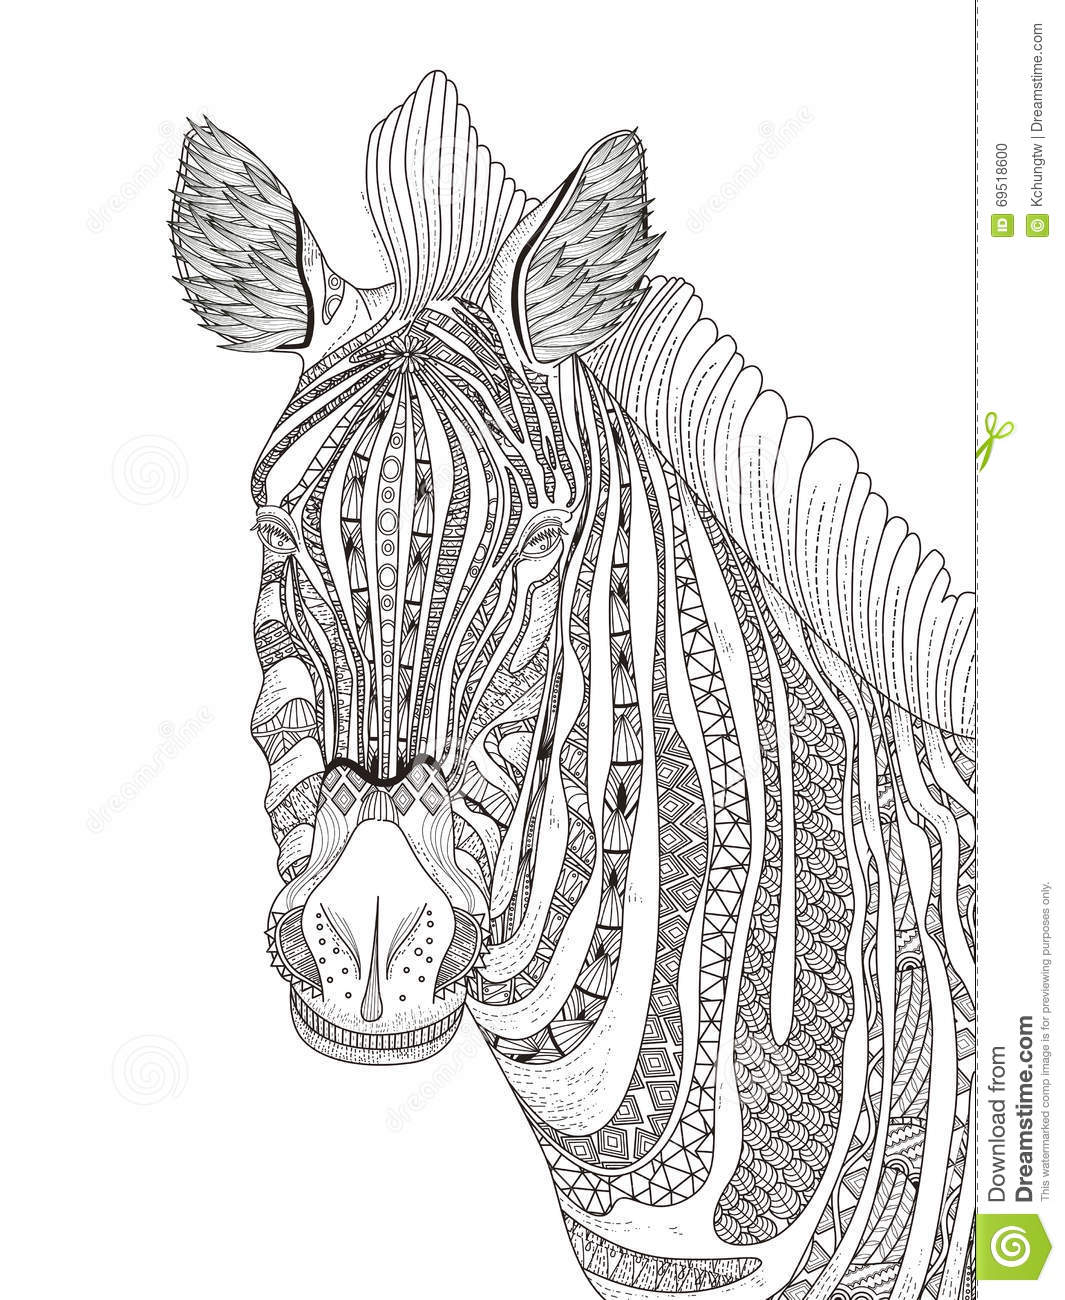 Zebra adult coloring page stock illustration image 69518600 for Coloring pages of zebra stripes